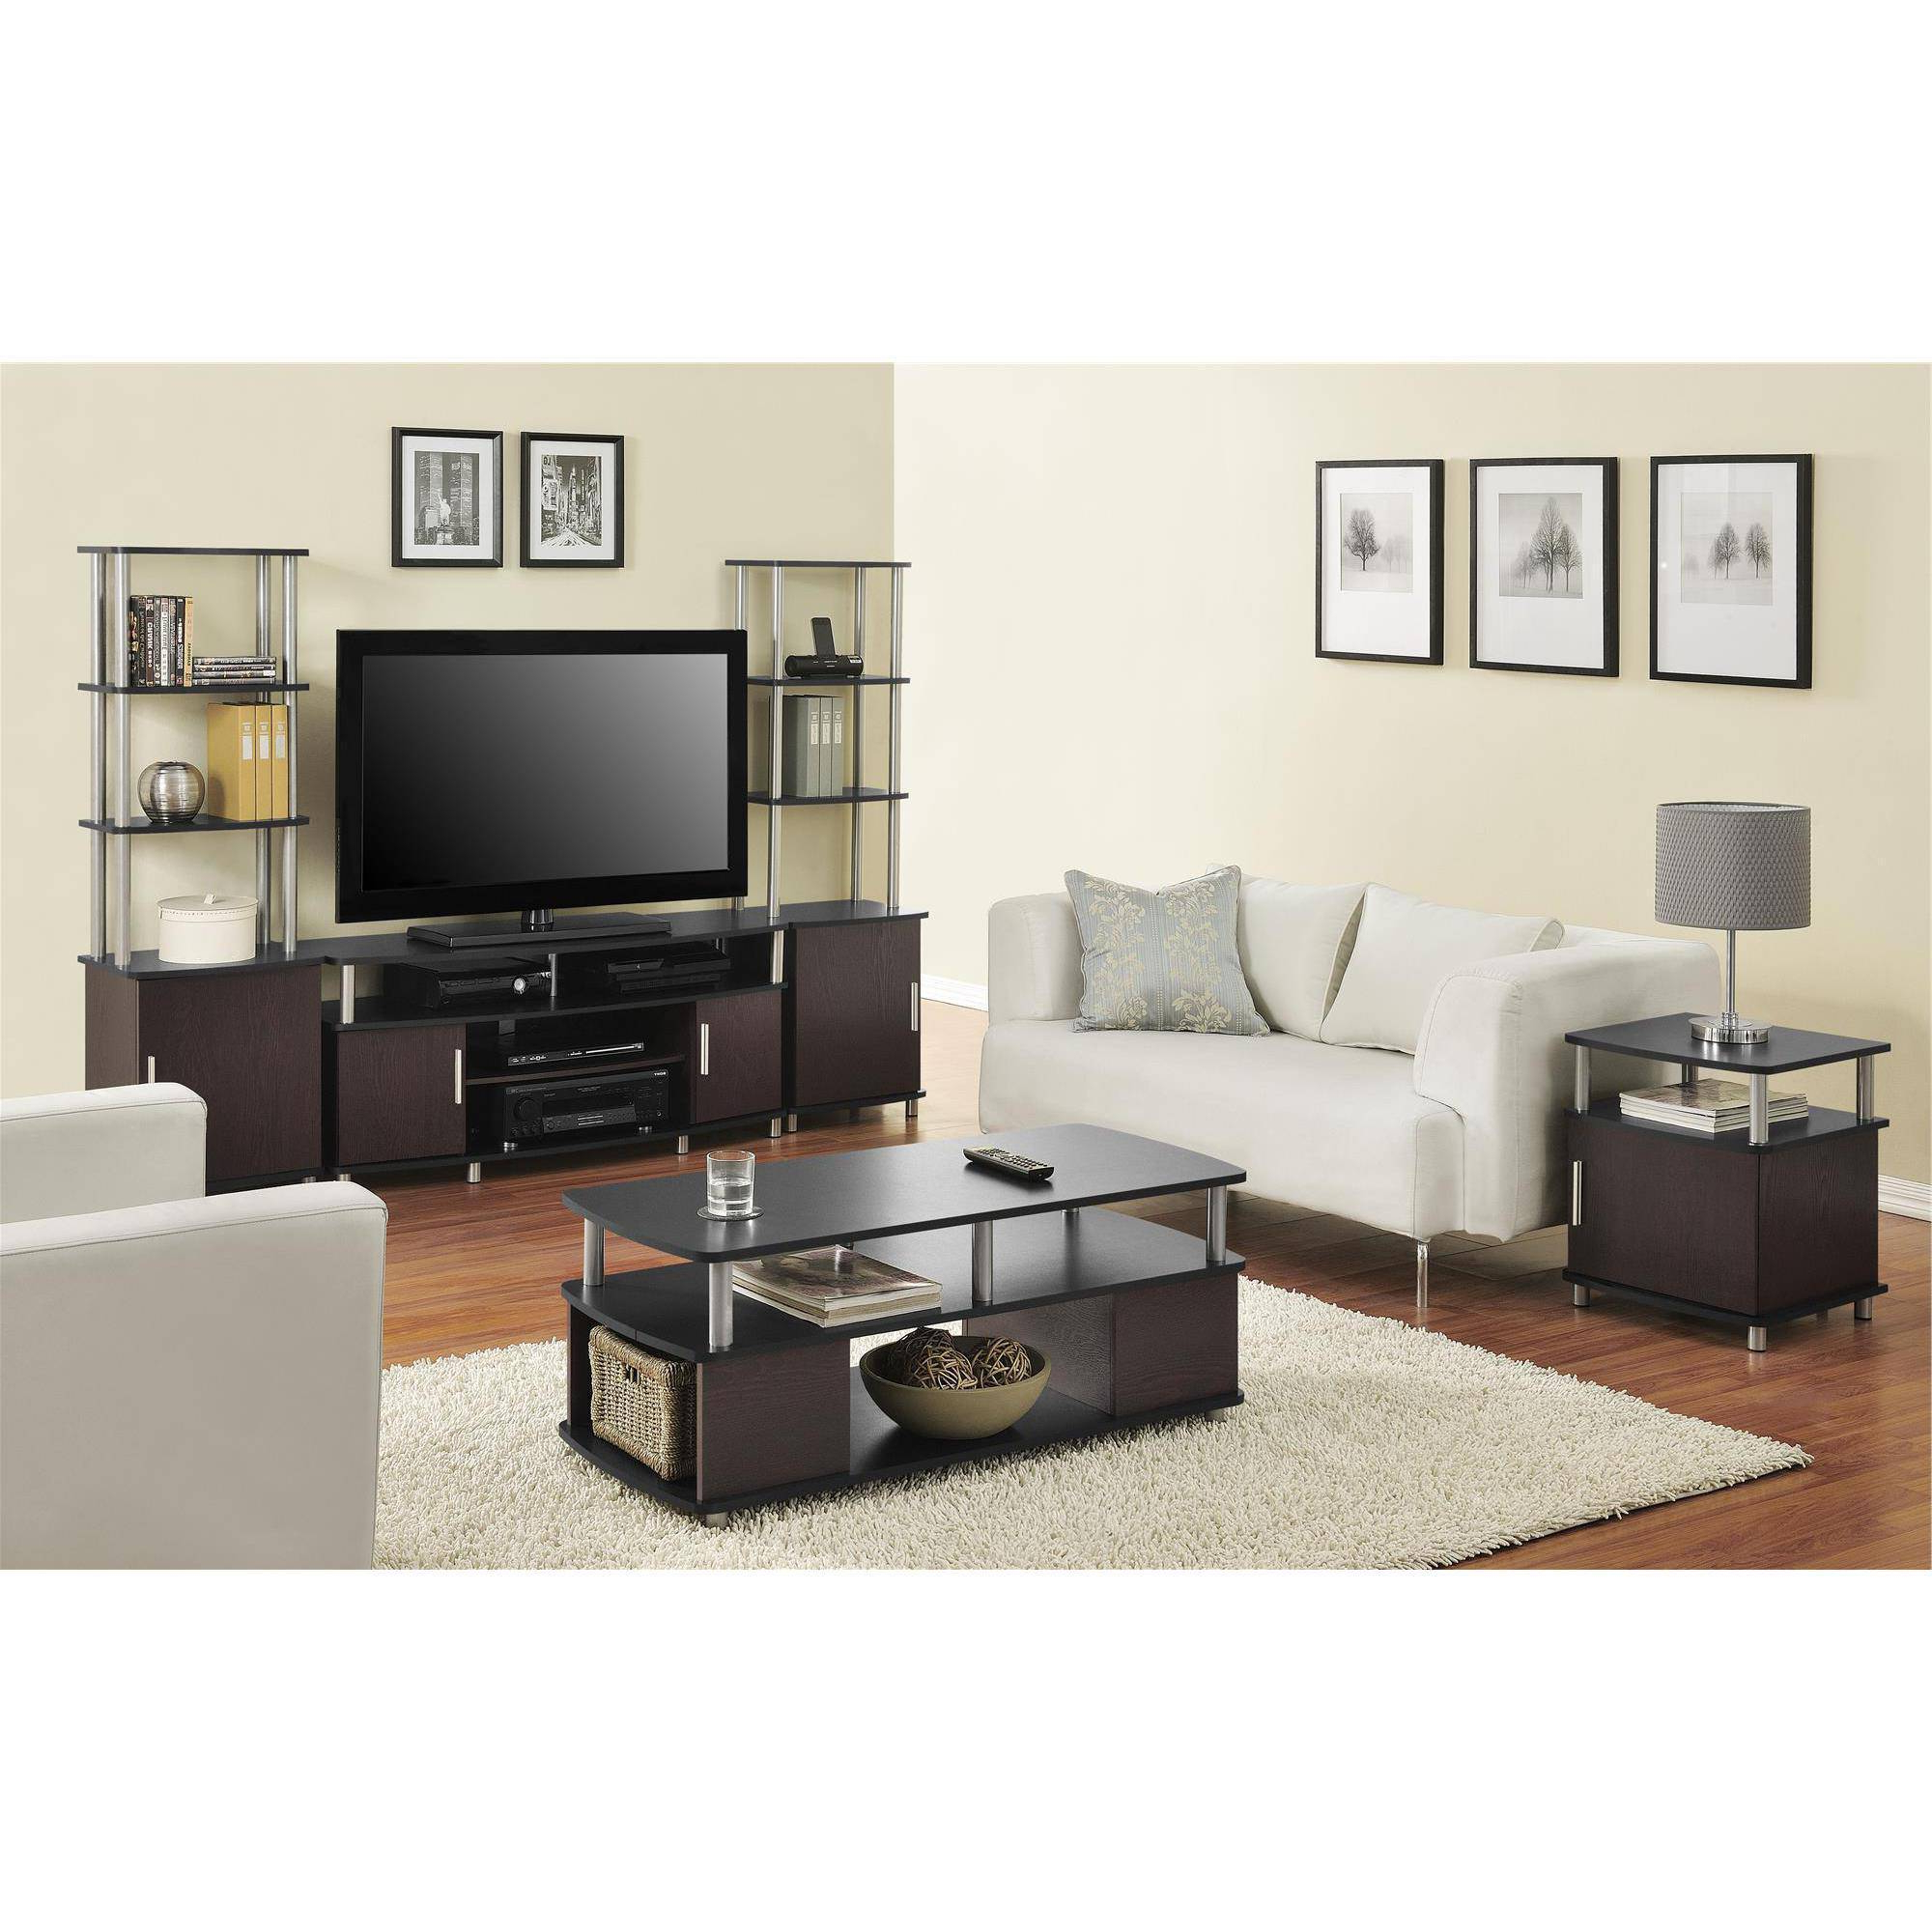 """Virginia Tv Stands For Tvs Up To 50"""" Within Most Popular Tv Stand Up To 50 Inch Flat Panel Screen Open Center (View 24 of 25)"""